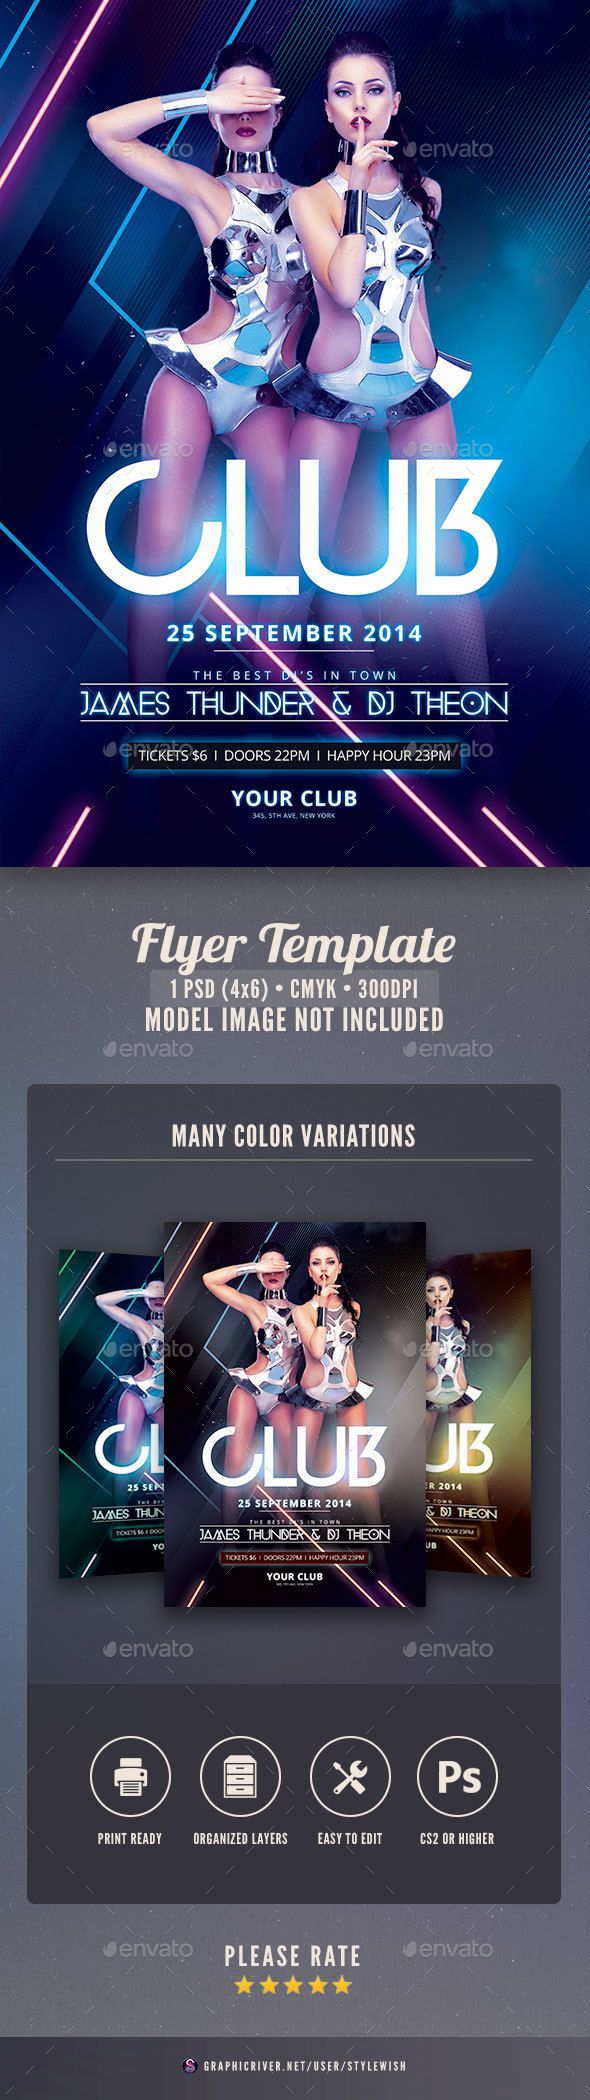 Club Flyer | Psd flyer templates, Flyer template and Template